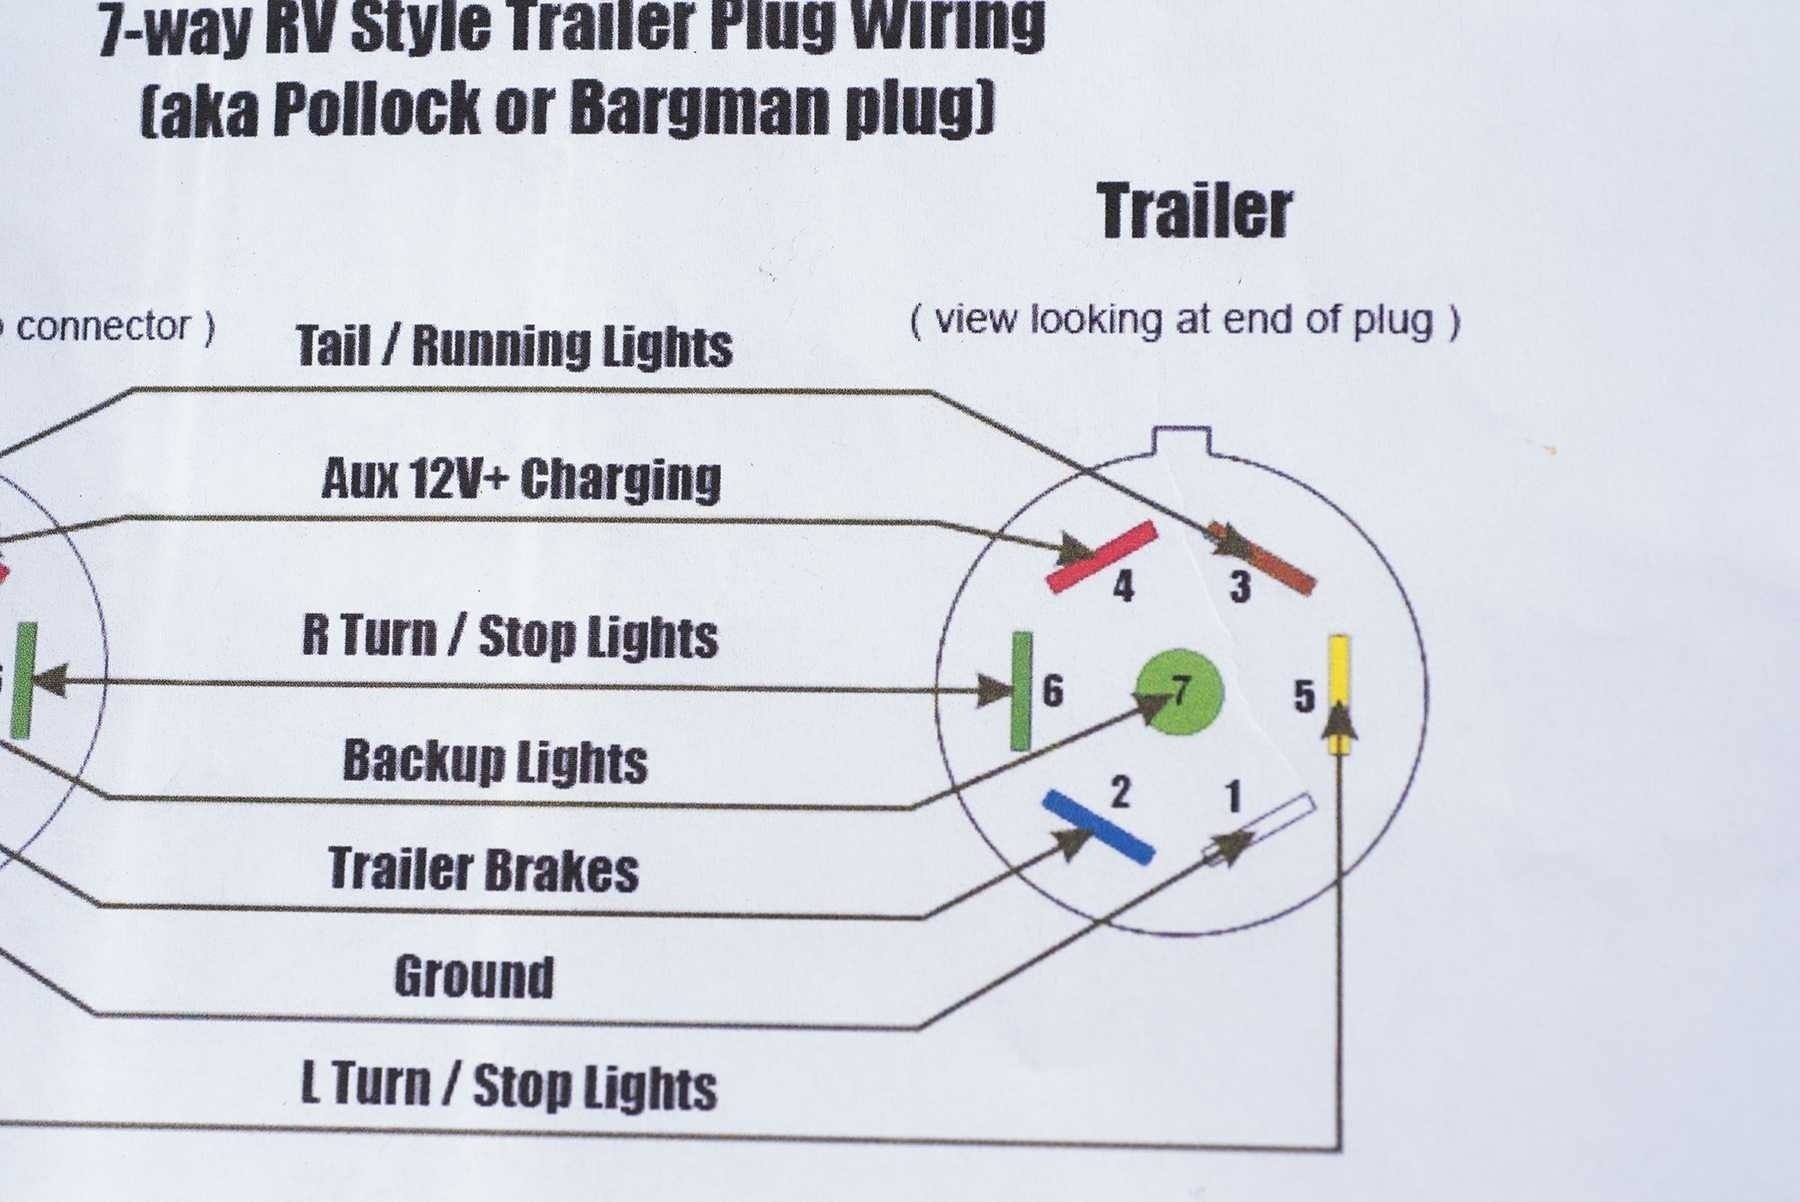 Wiring Diagram For Stock Trailer Save 7 To Wire Horse A